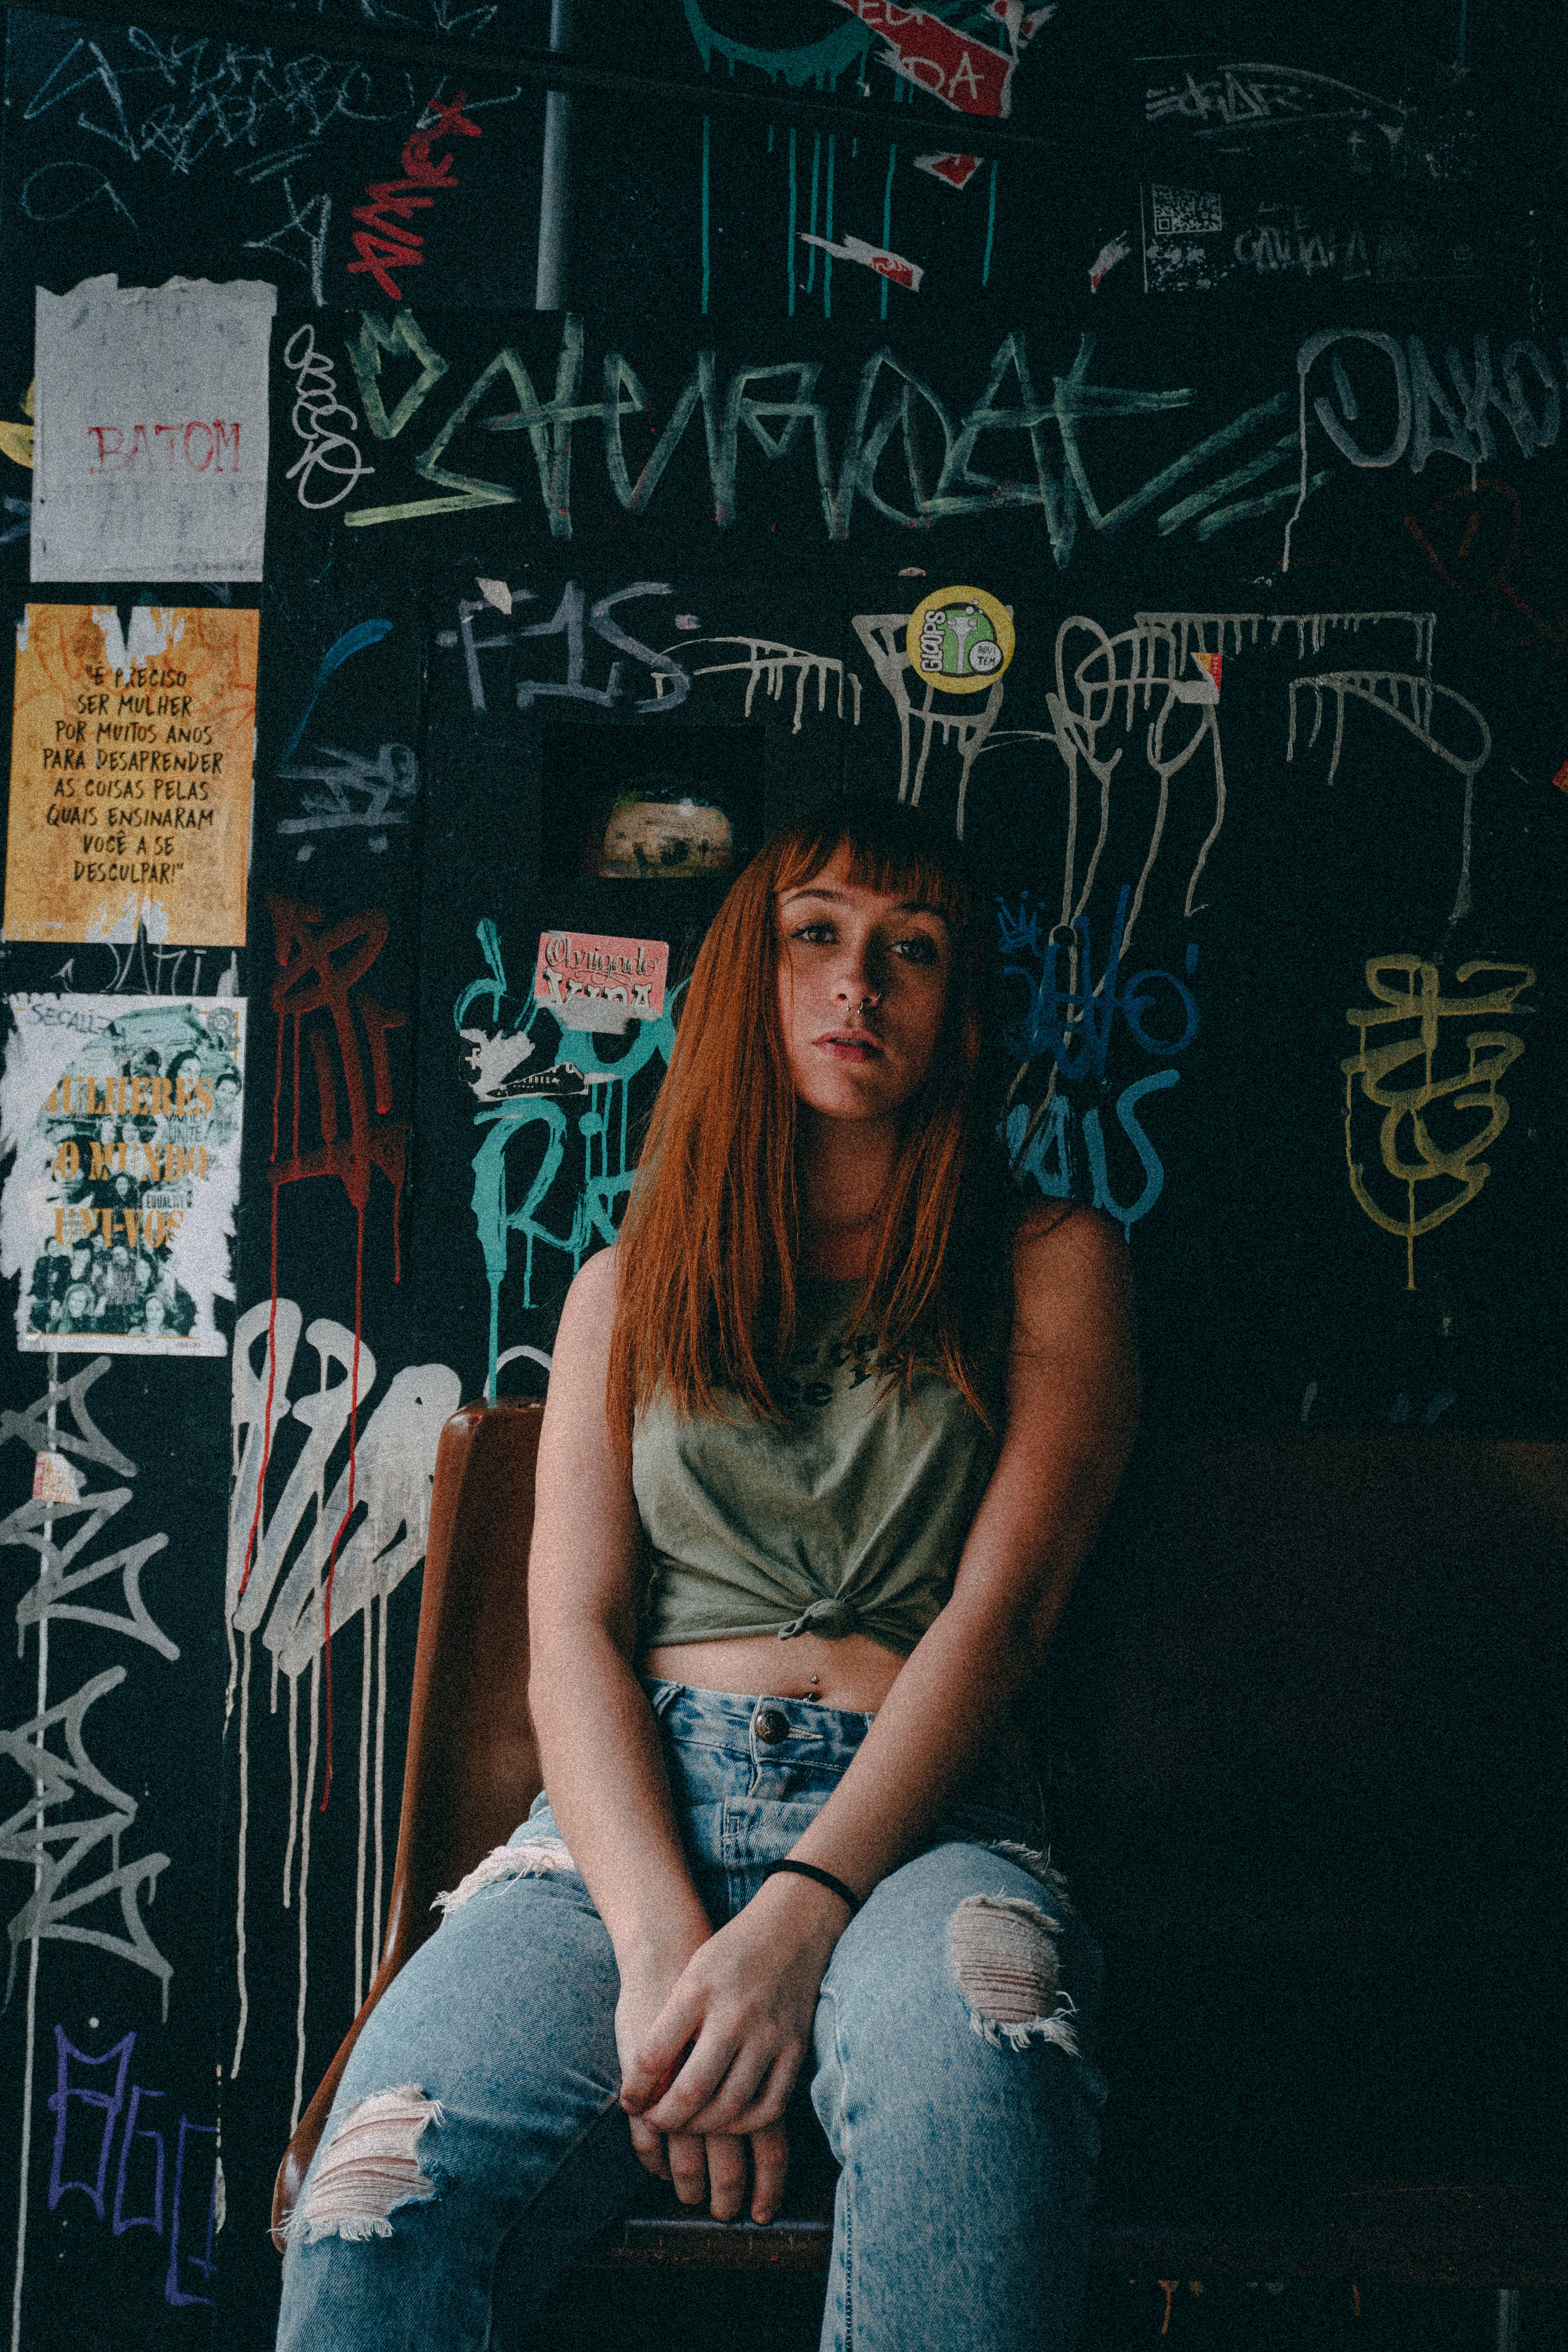 Free stock photo of woman, graffiti, sign, blur